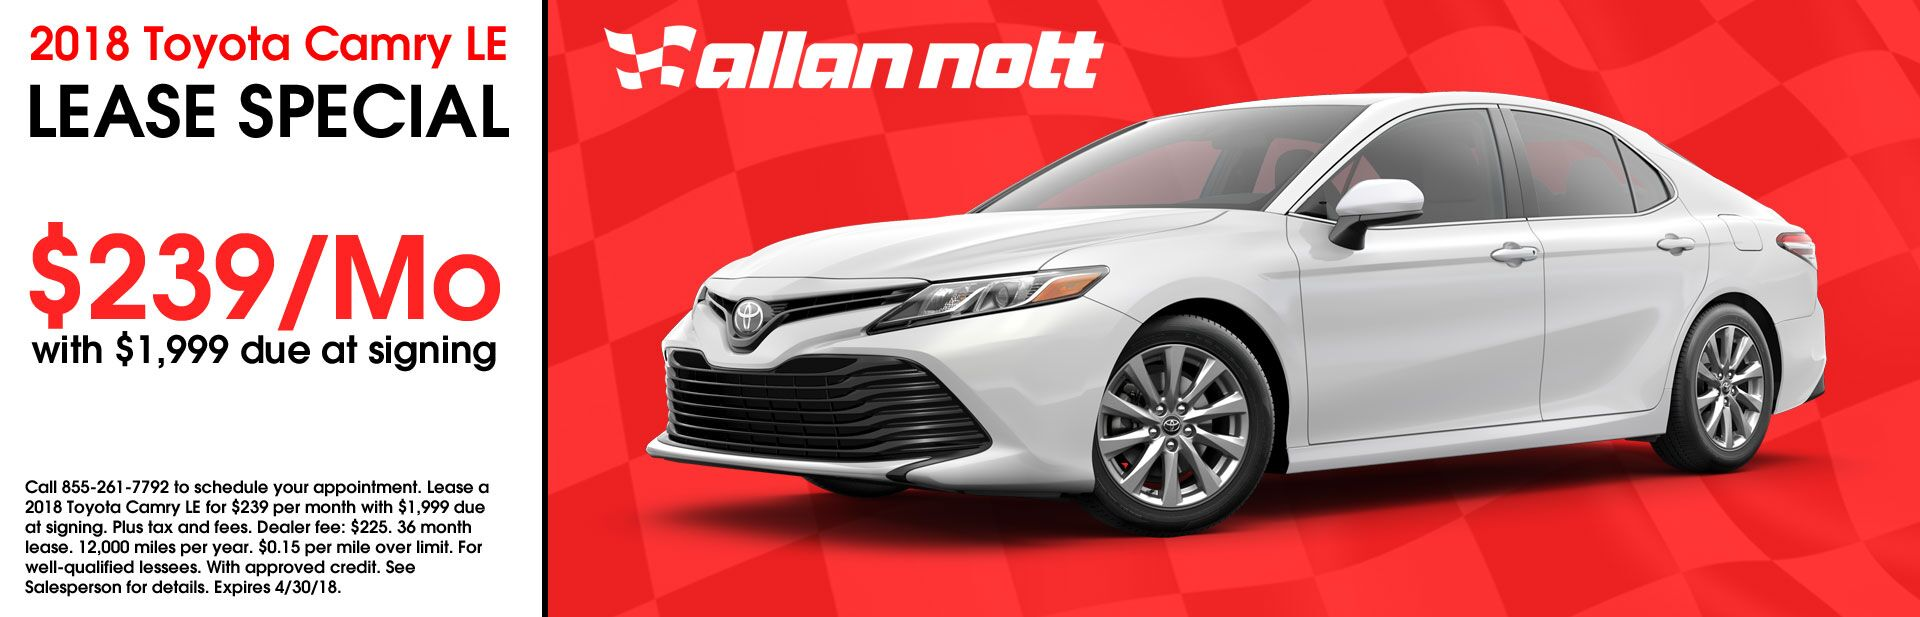 April 2018 - Toyota Camry LE Lease Special